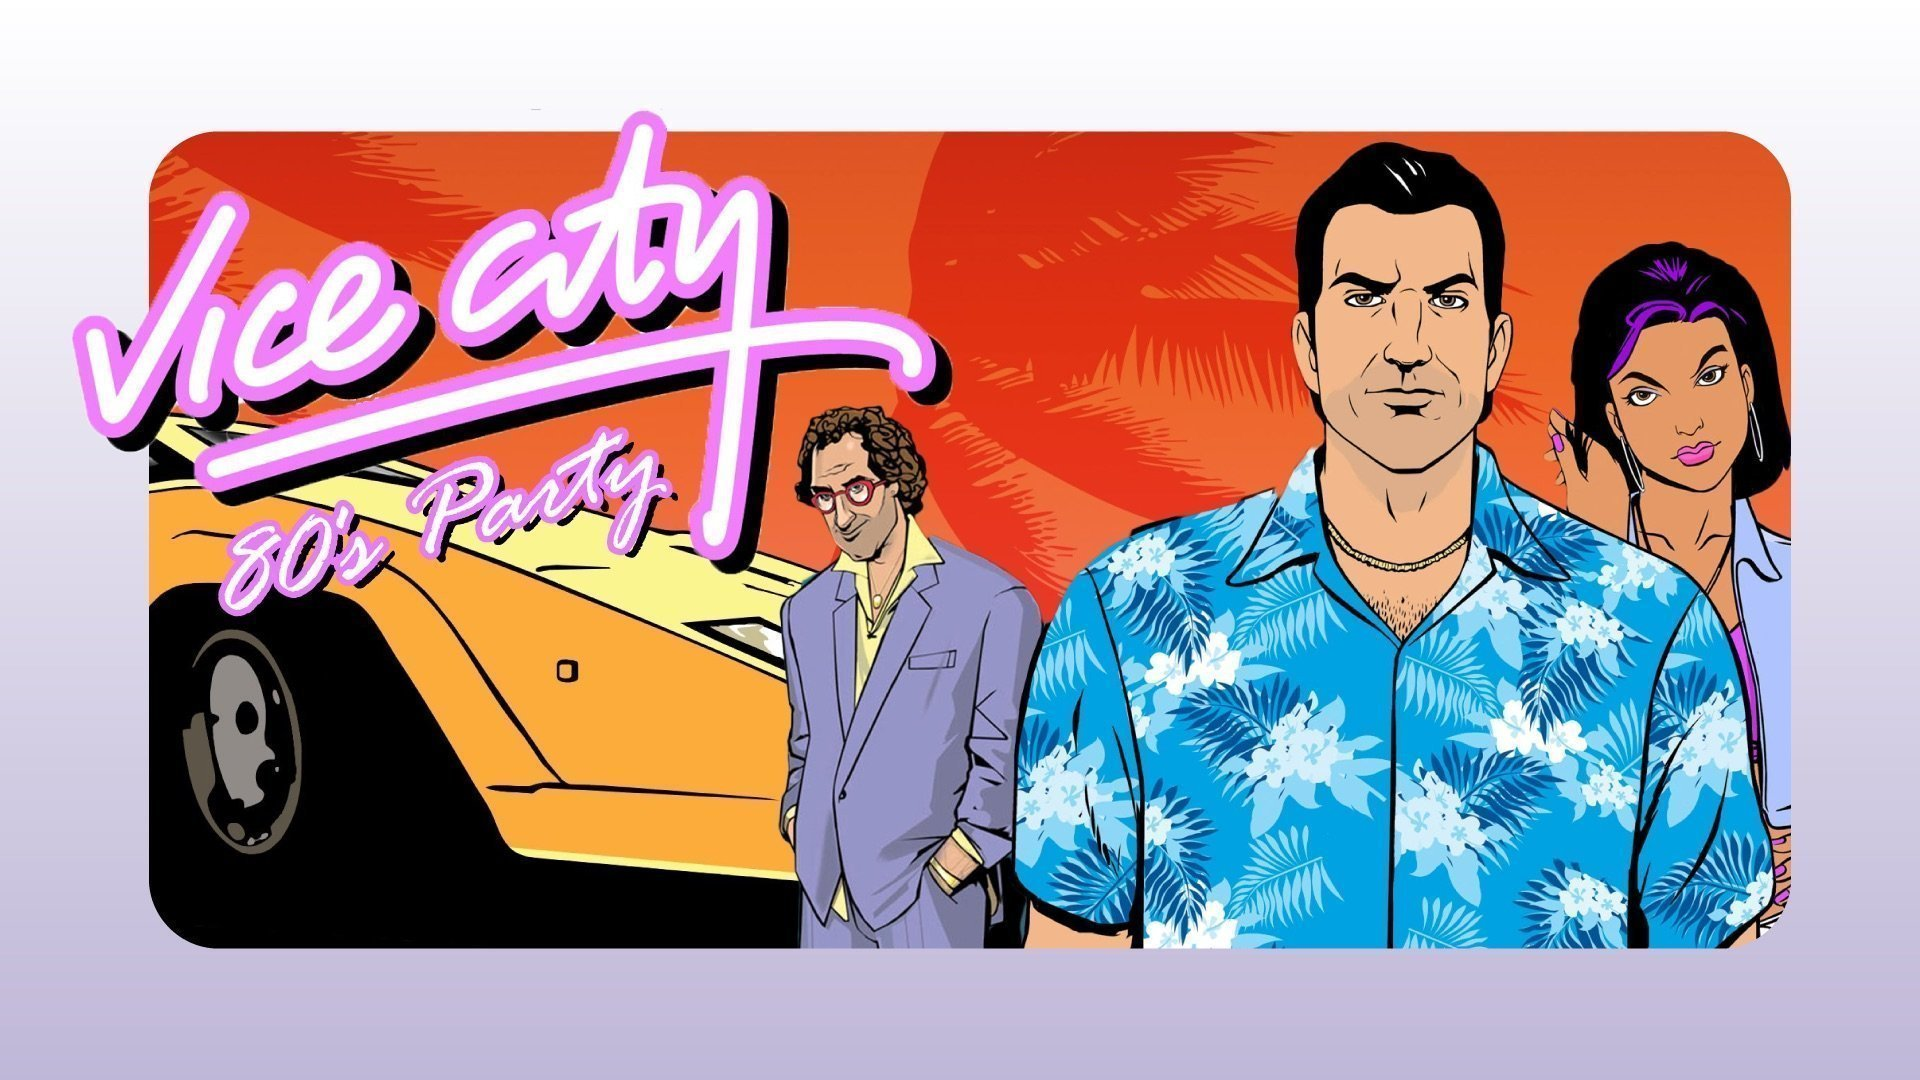 Vice city  80´s vs. 90´s party